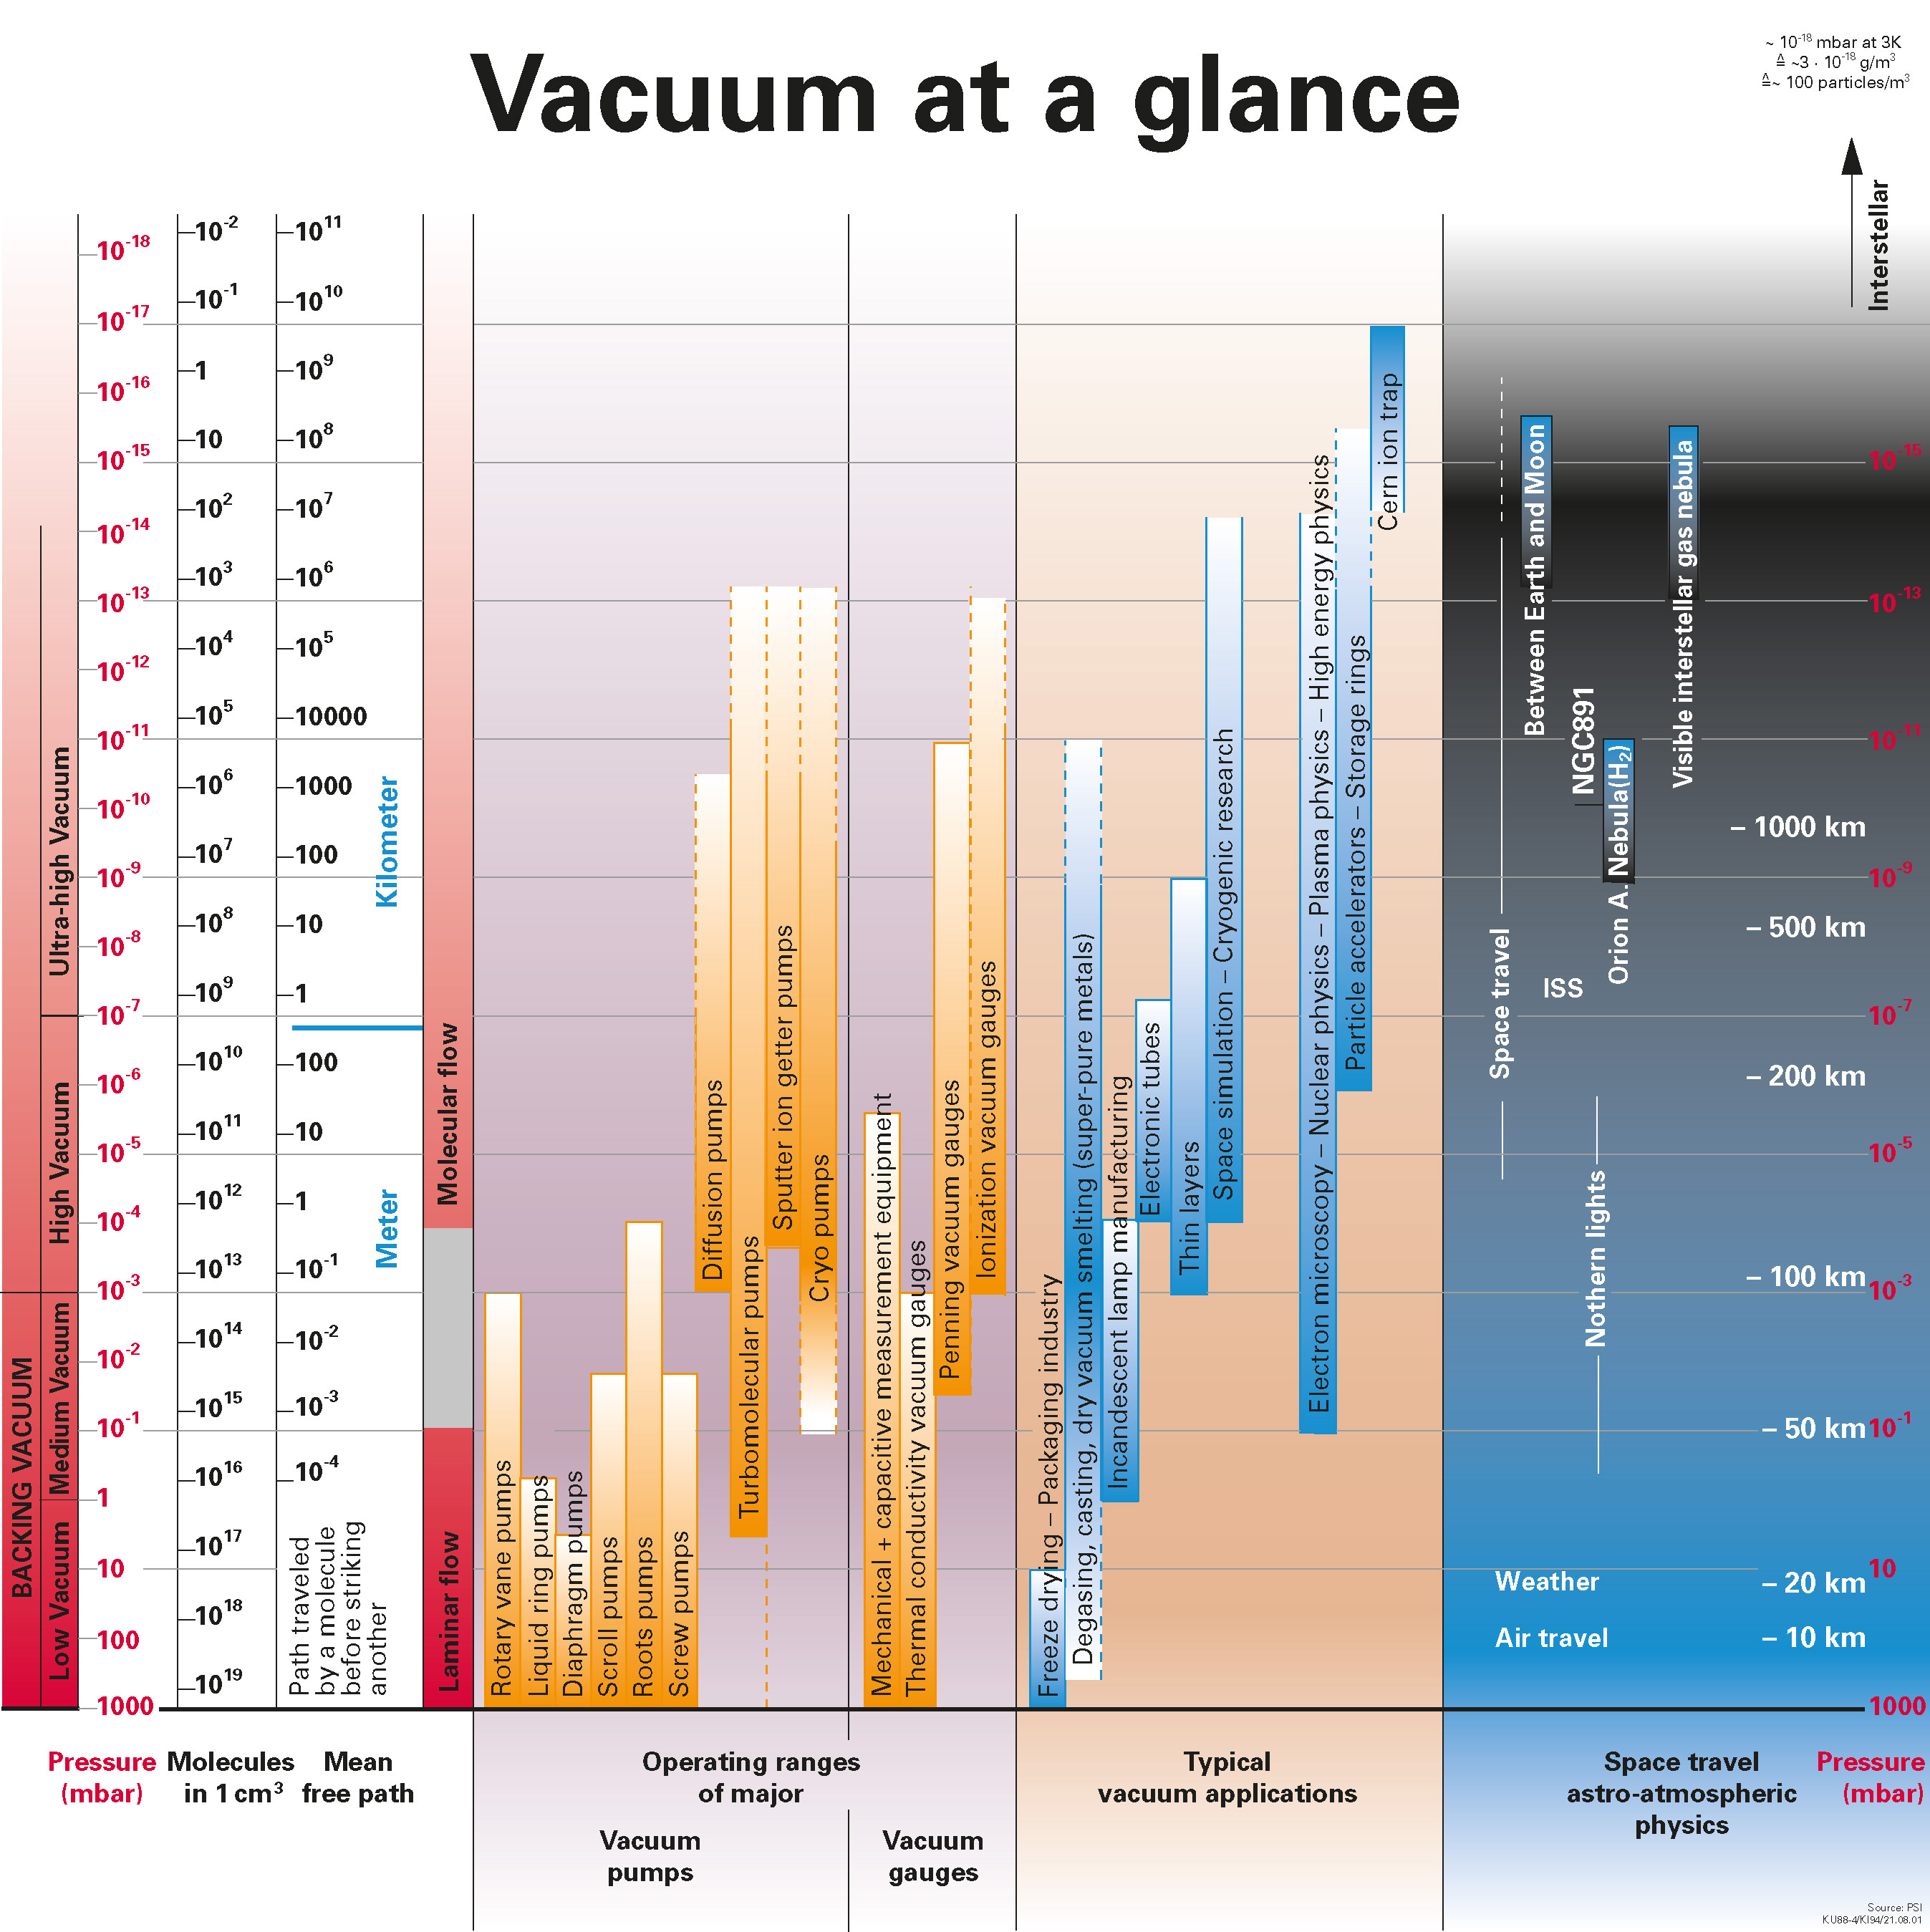 Overview of vacuum